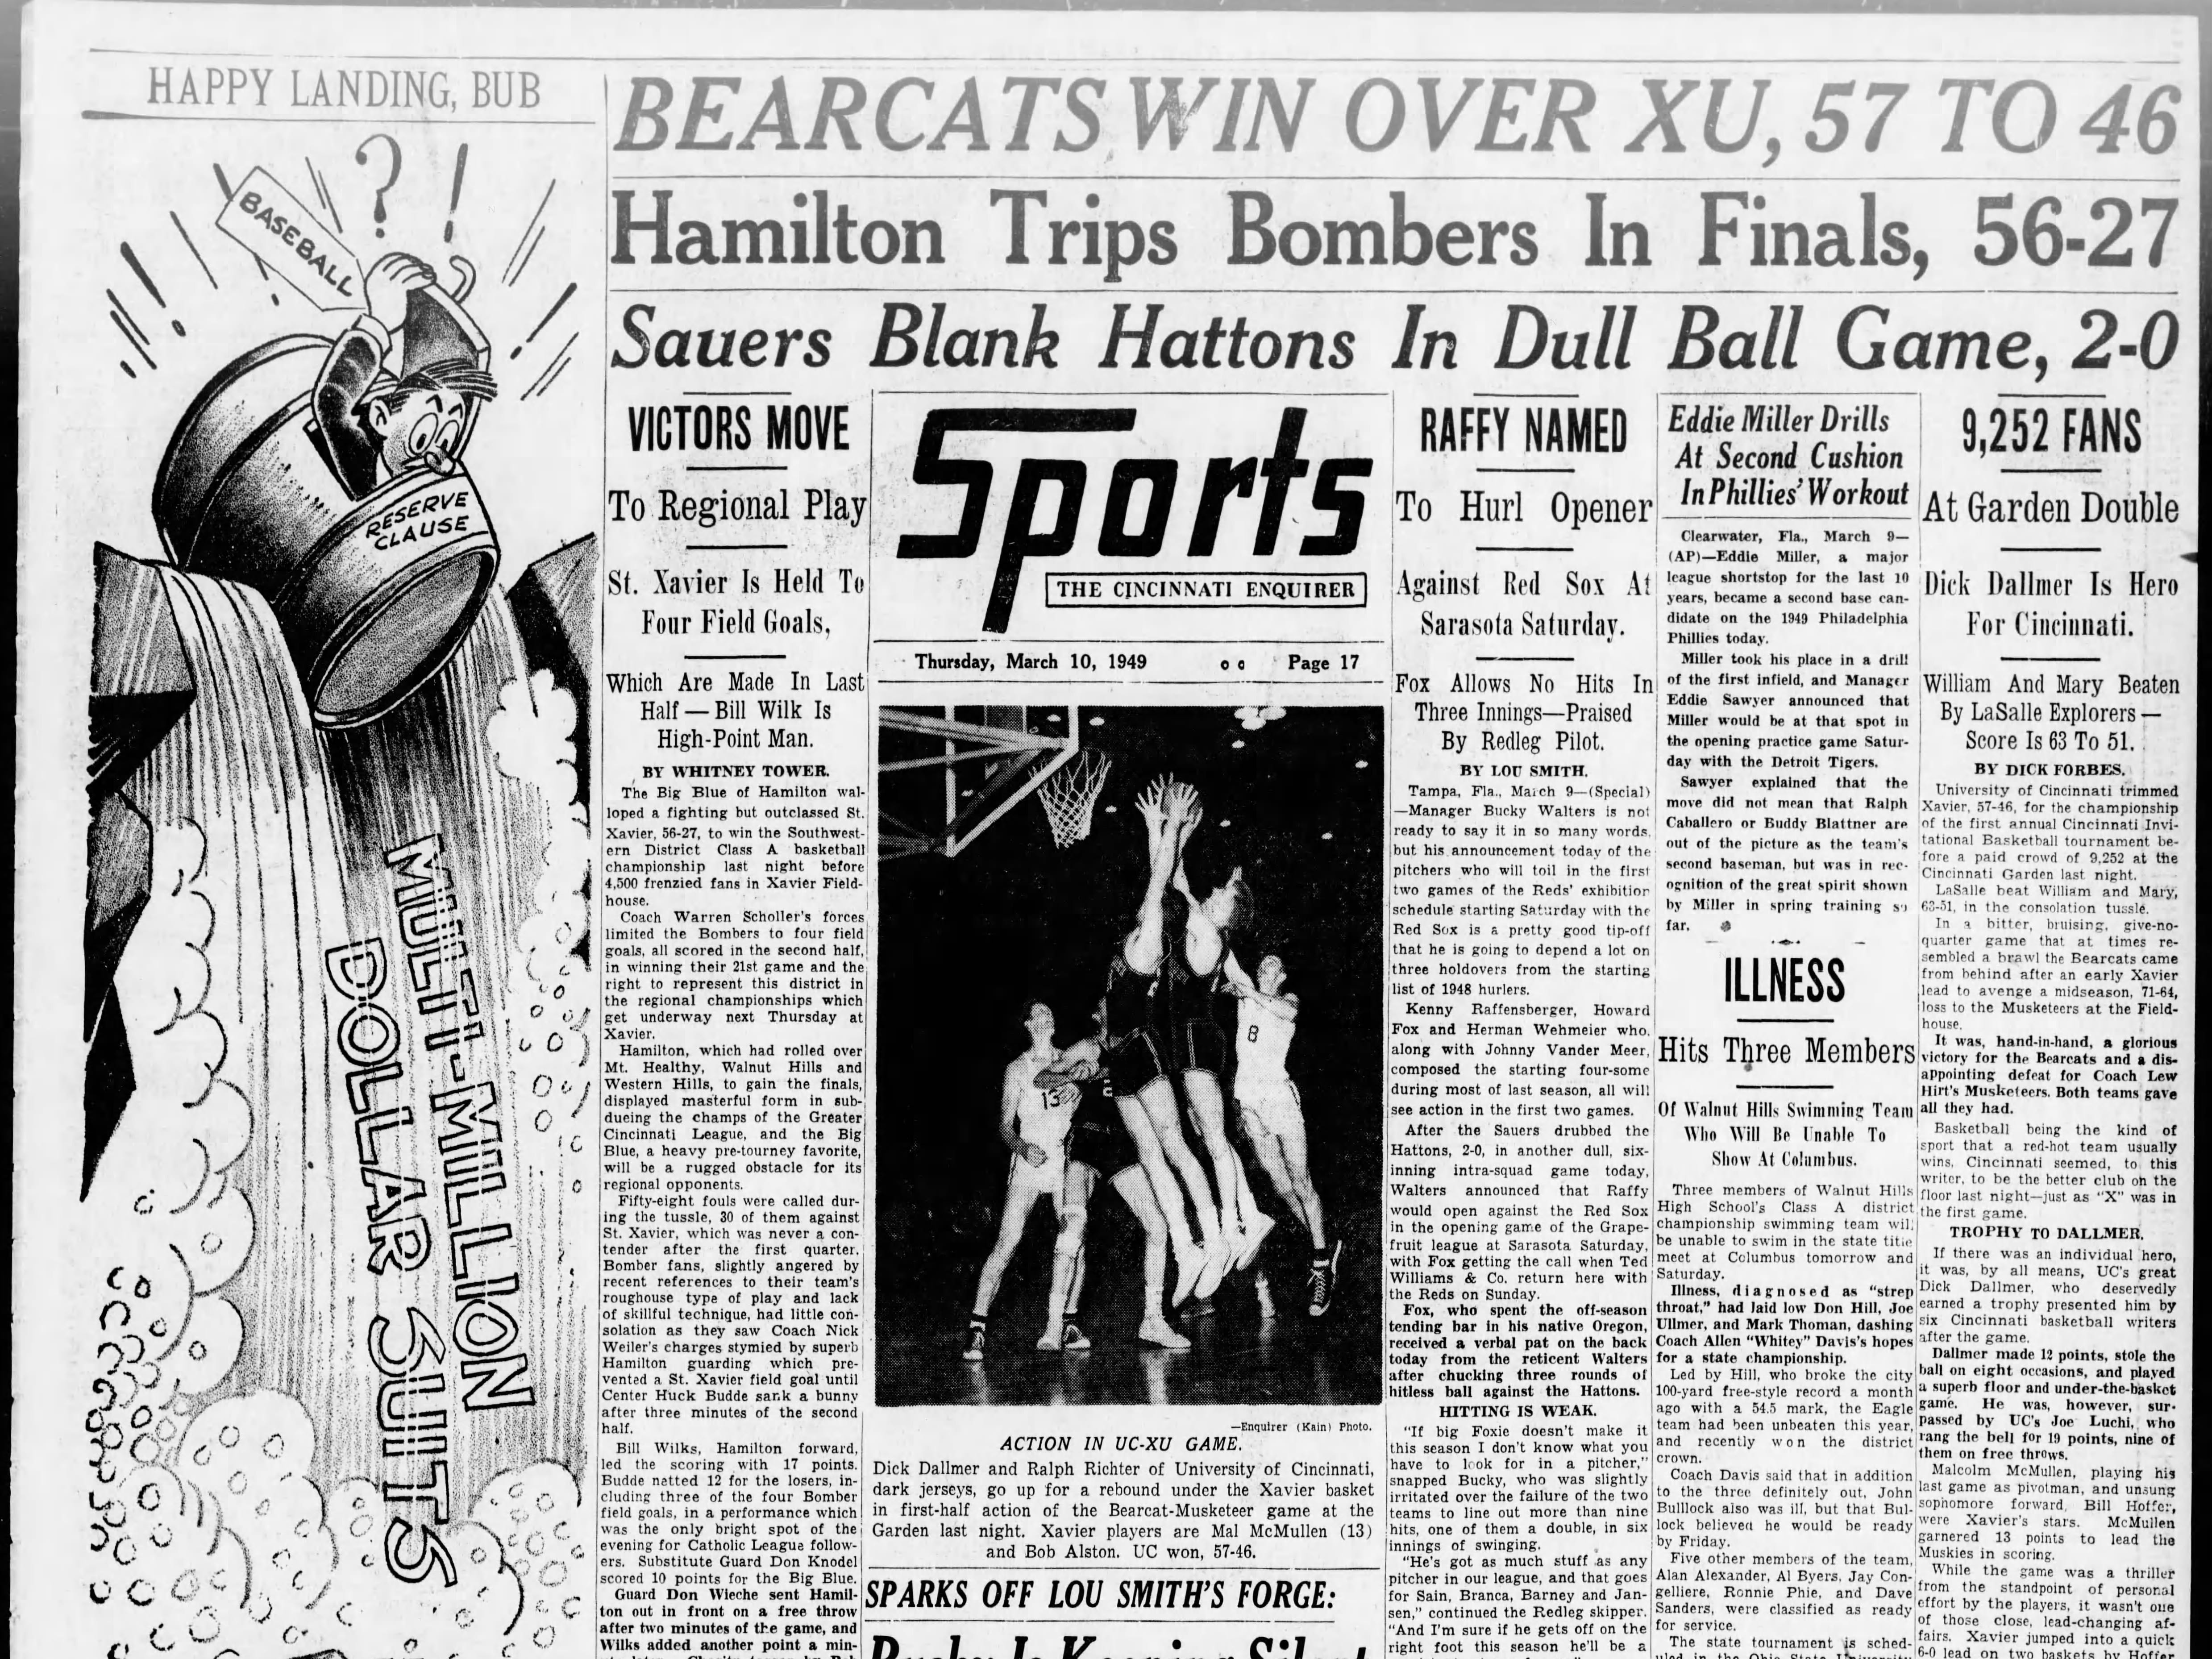 UC was able to get revenge on Xavier when the two teams met for a second time in 1949.